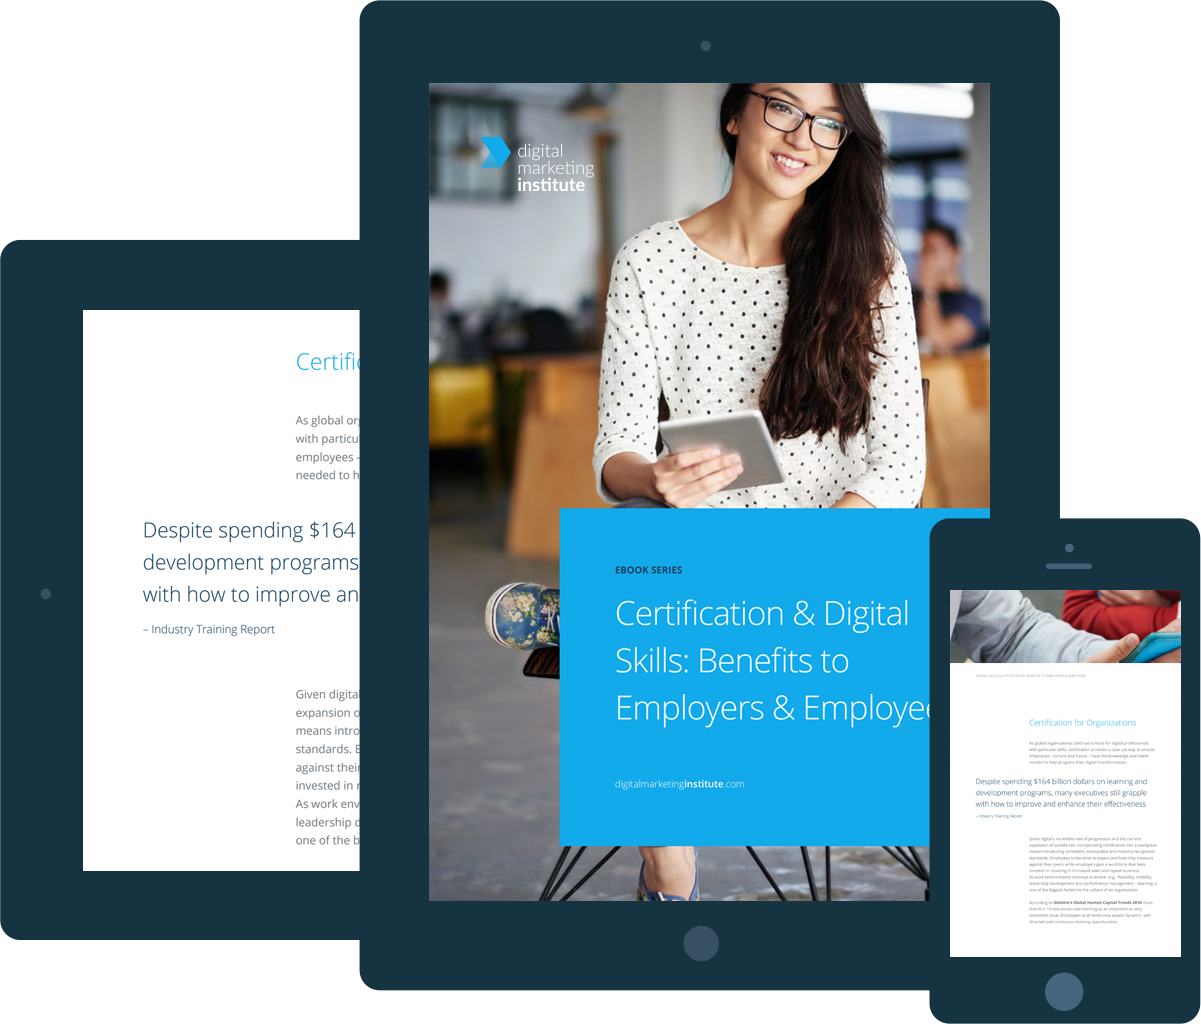 Ebook - Certification & Digital Skills: Benefits to Employers & Employees